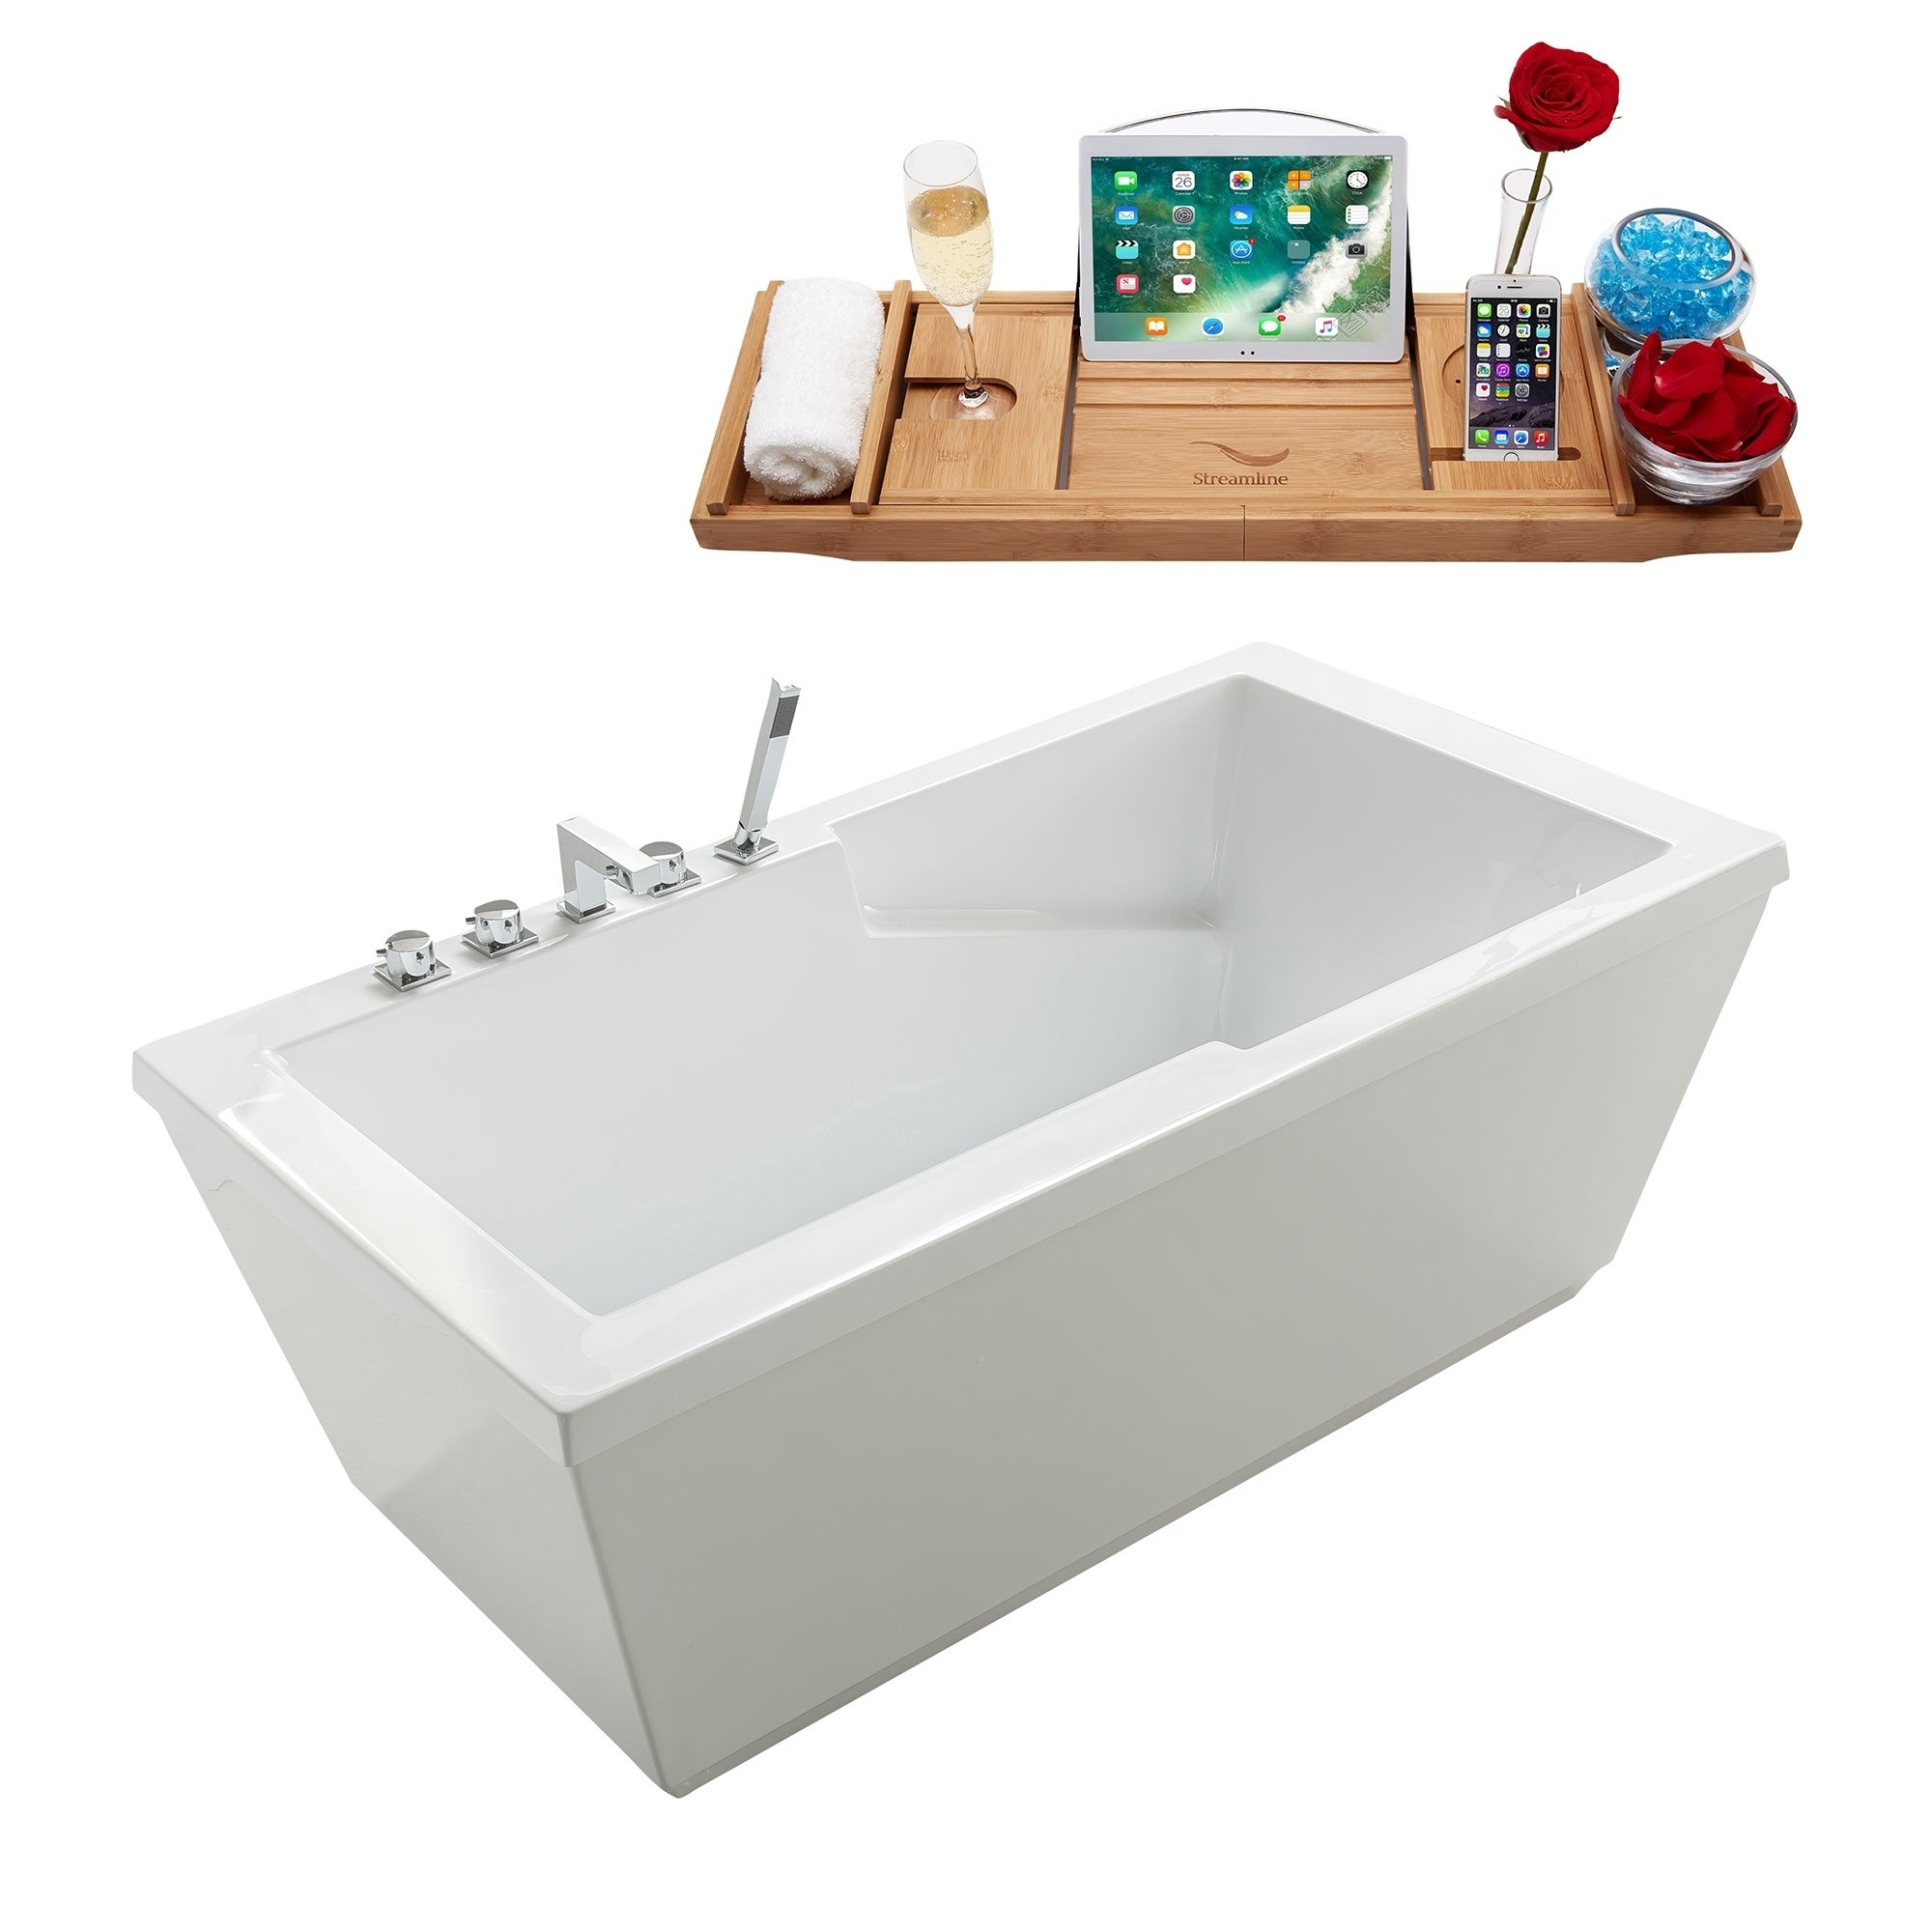 Best Freestanding Tubs 2020 Shop Tub, Faucet and Tray Set Streamline 66